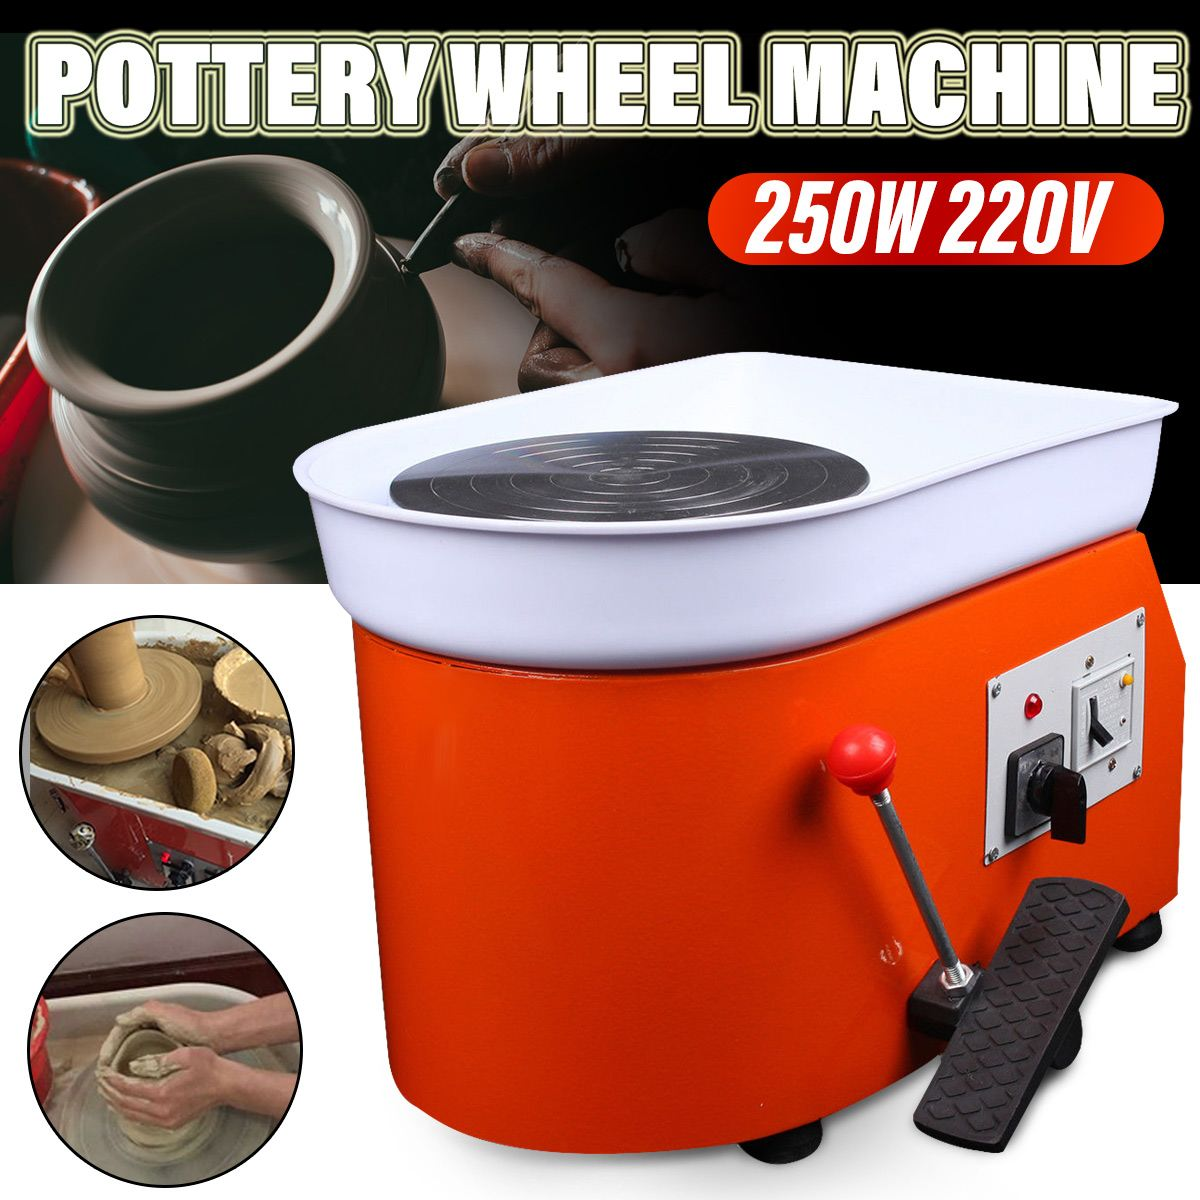 Turning Electric Pottery Wheel Ceramic Machine Tools 250W 220V DIY Ceramic Forming Machine Foot Pedal Ceramic Clay Art Work Kits